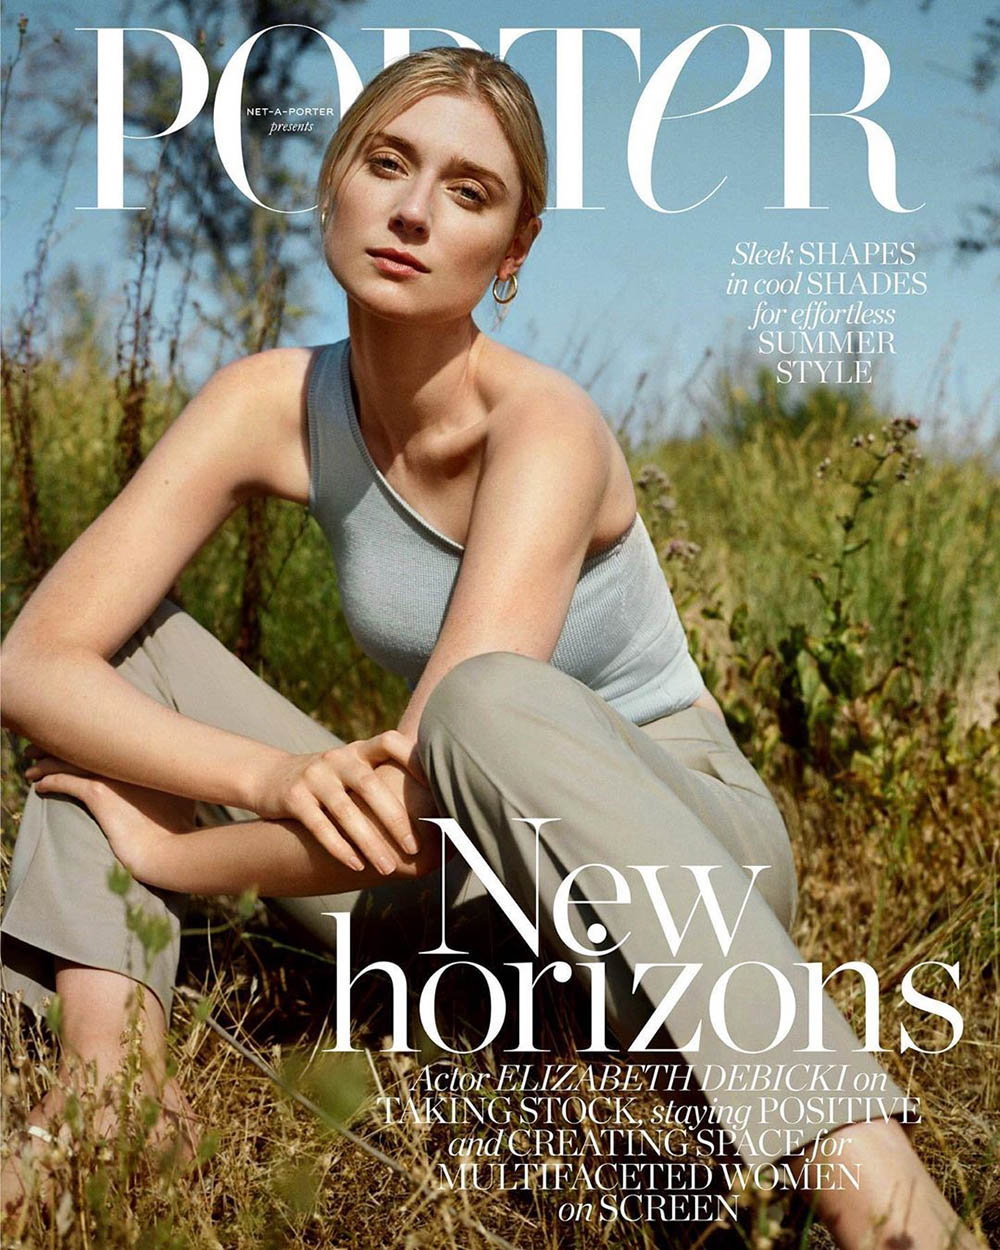 Elizabeth Debicki covers Porter Magazine July 13th, 2020 by Olivia Malone